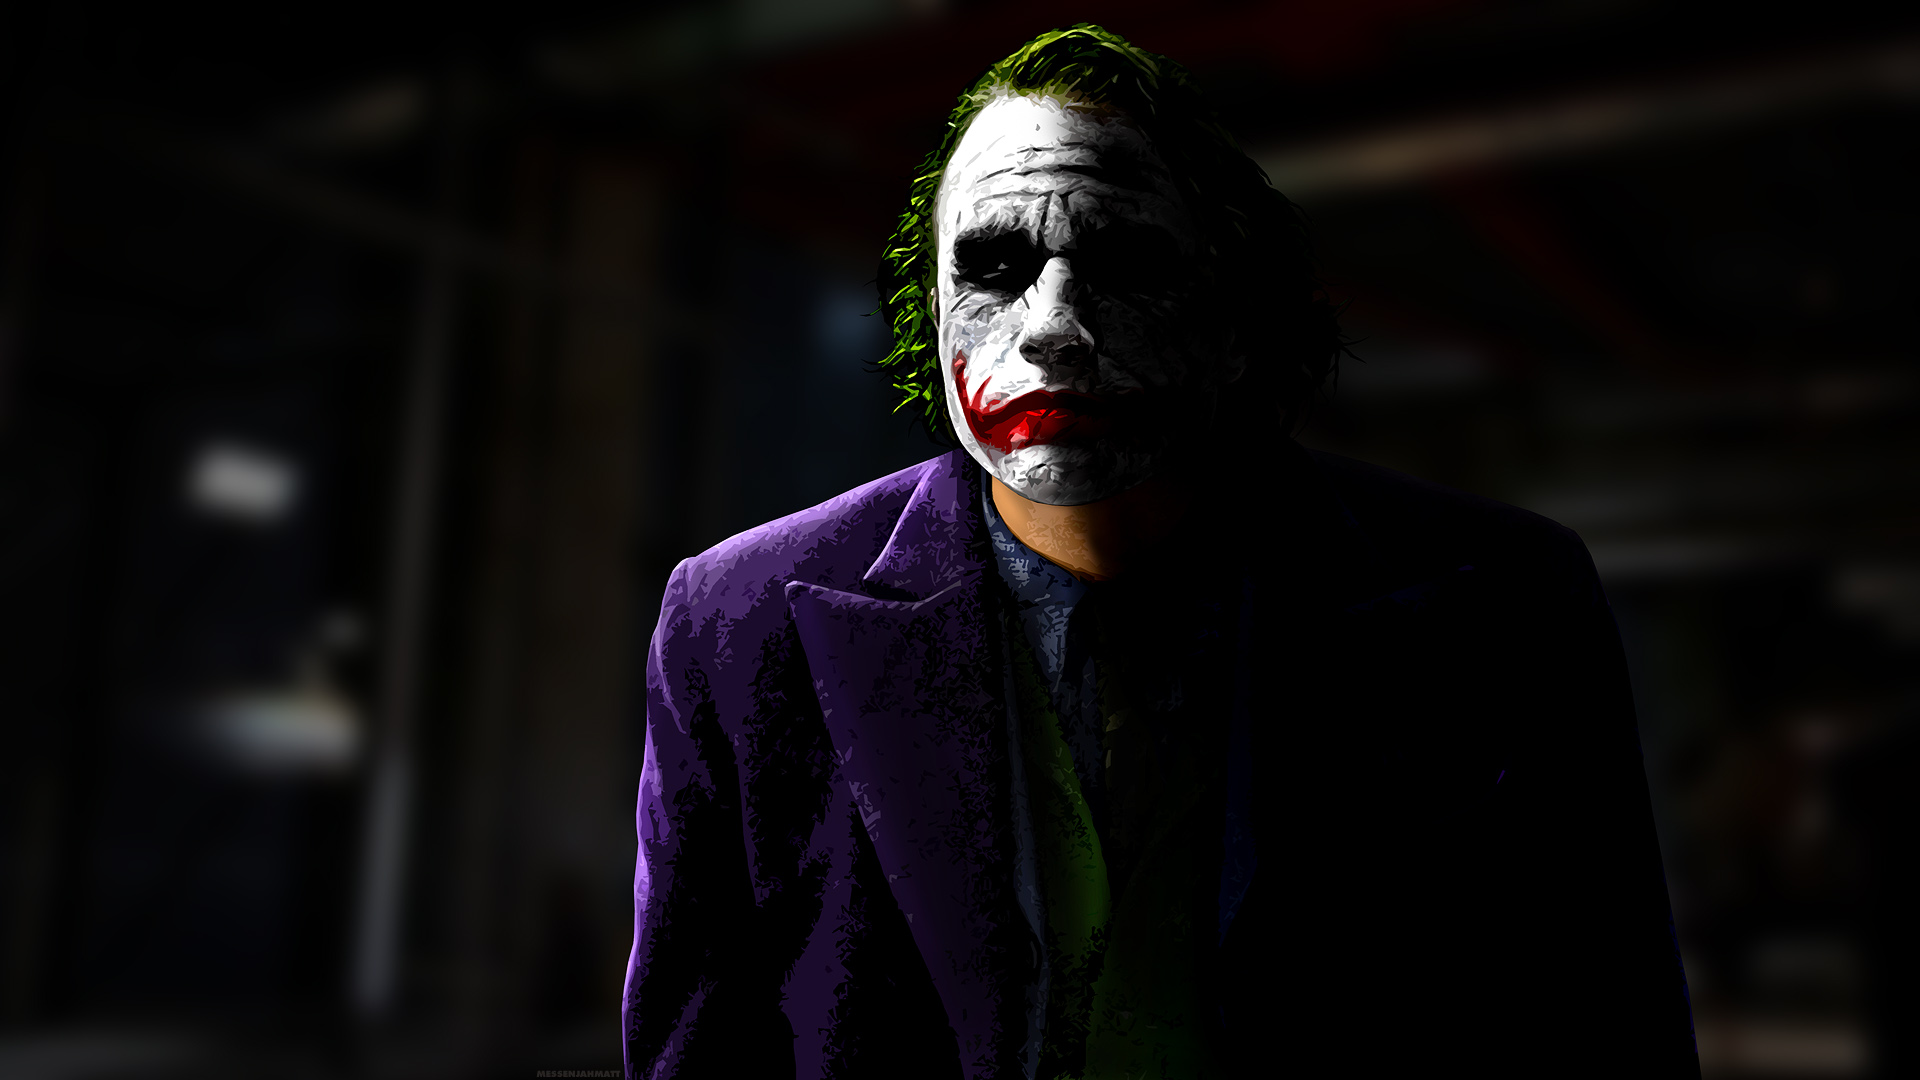 Joker Hd Wallpapers: Joker Wallpapers High Quality